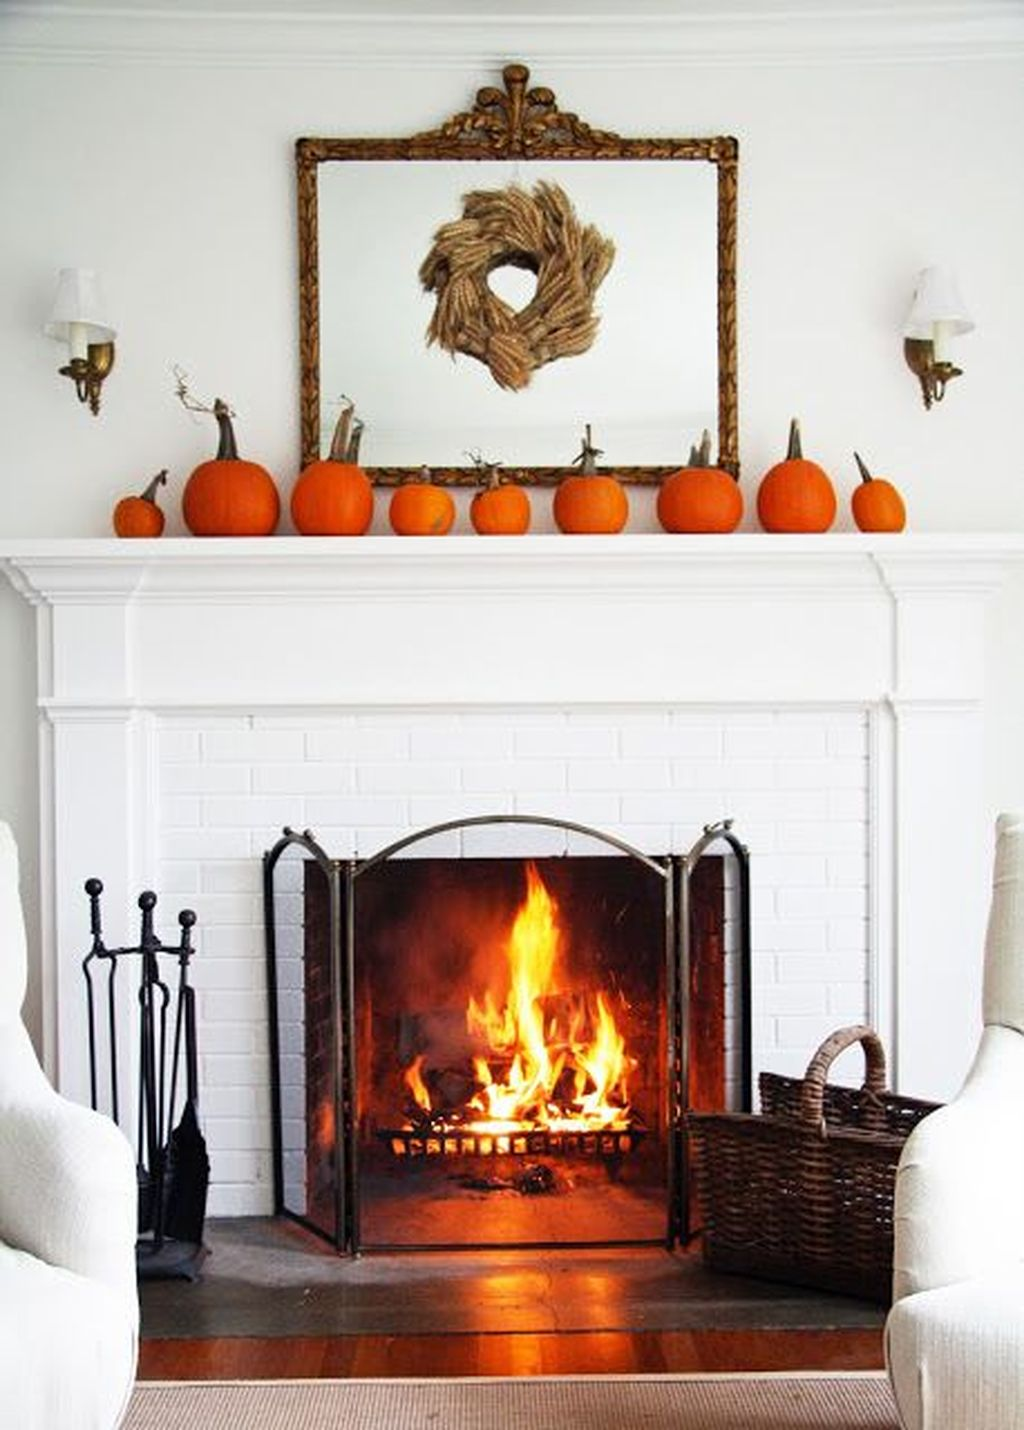 Scary But Classy Halloween Fireplace Decoration Ideas 95